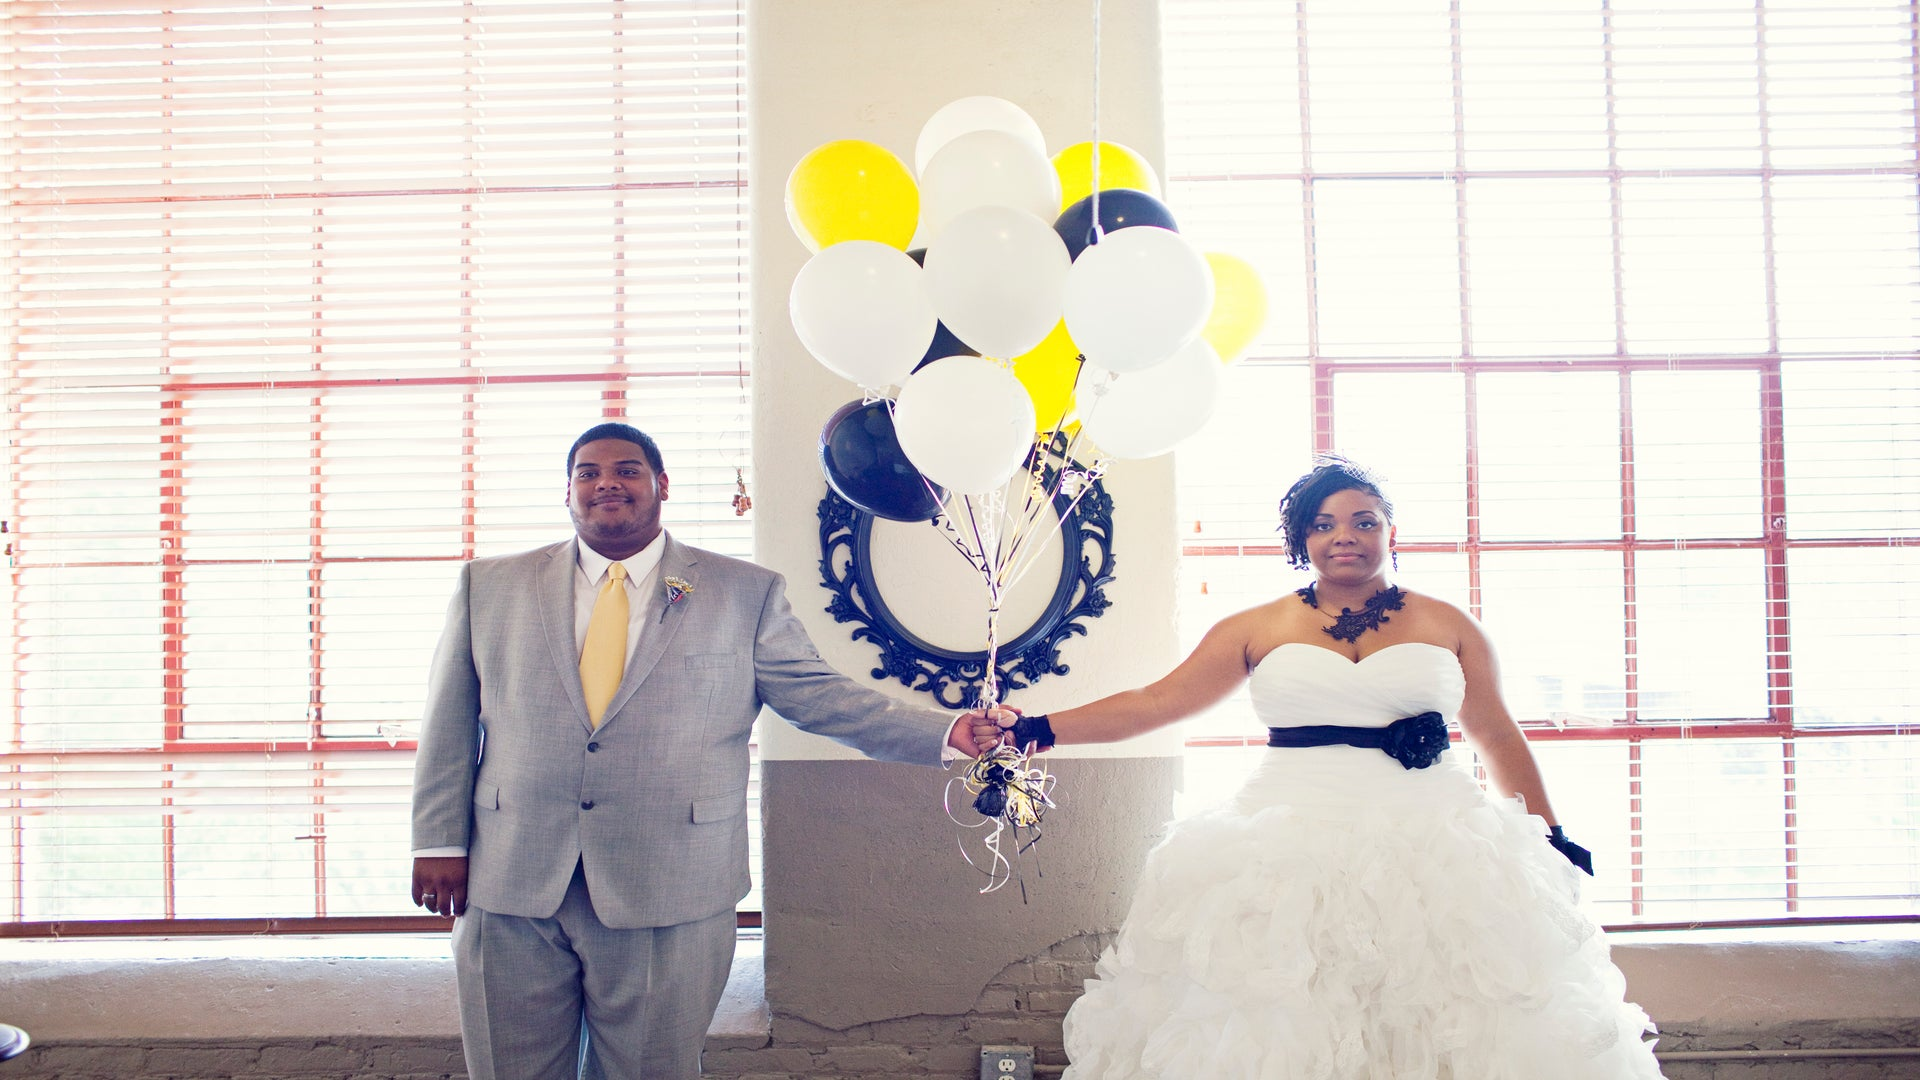 Bridal Bliss: A Picture-Perfect Love